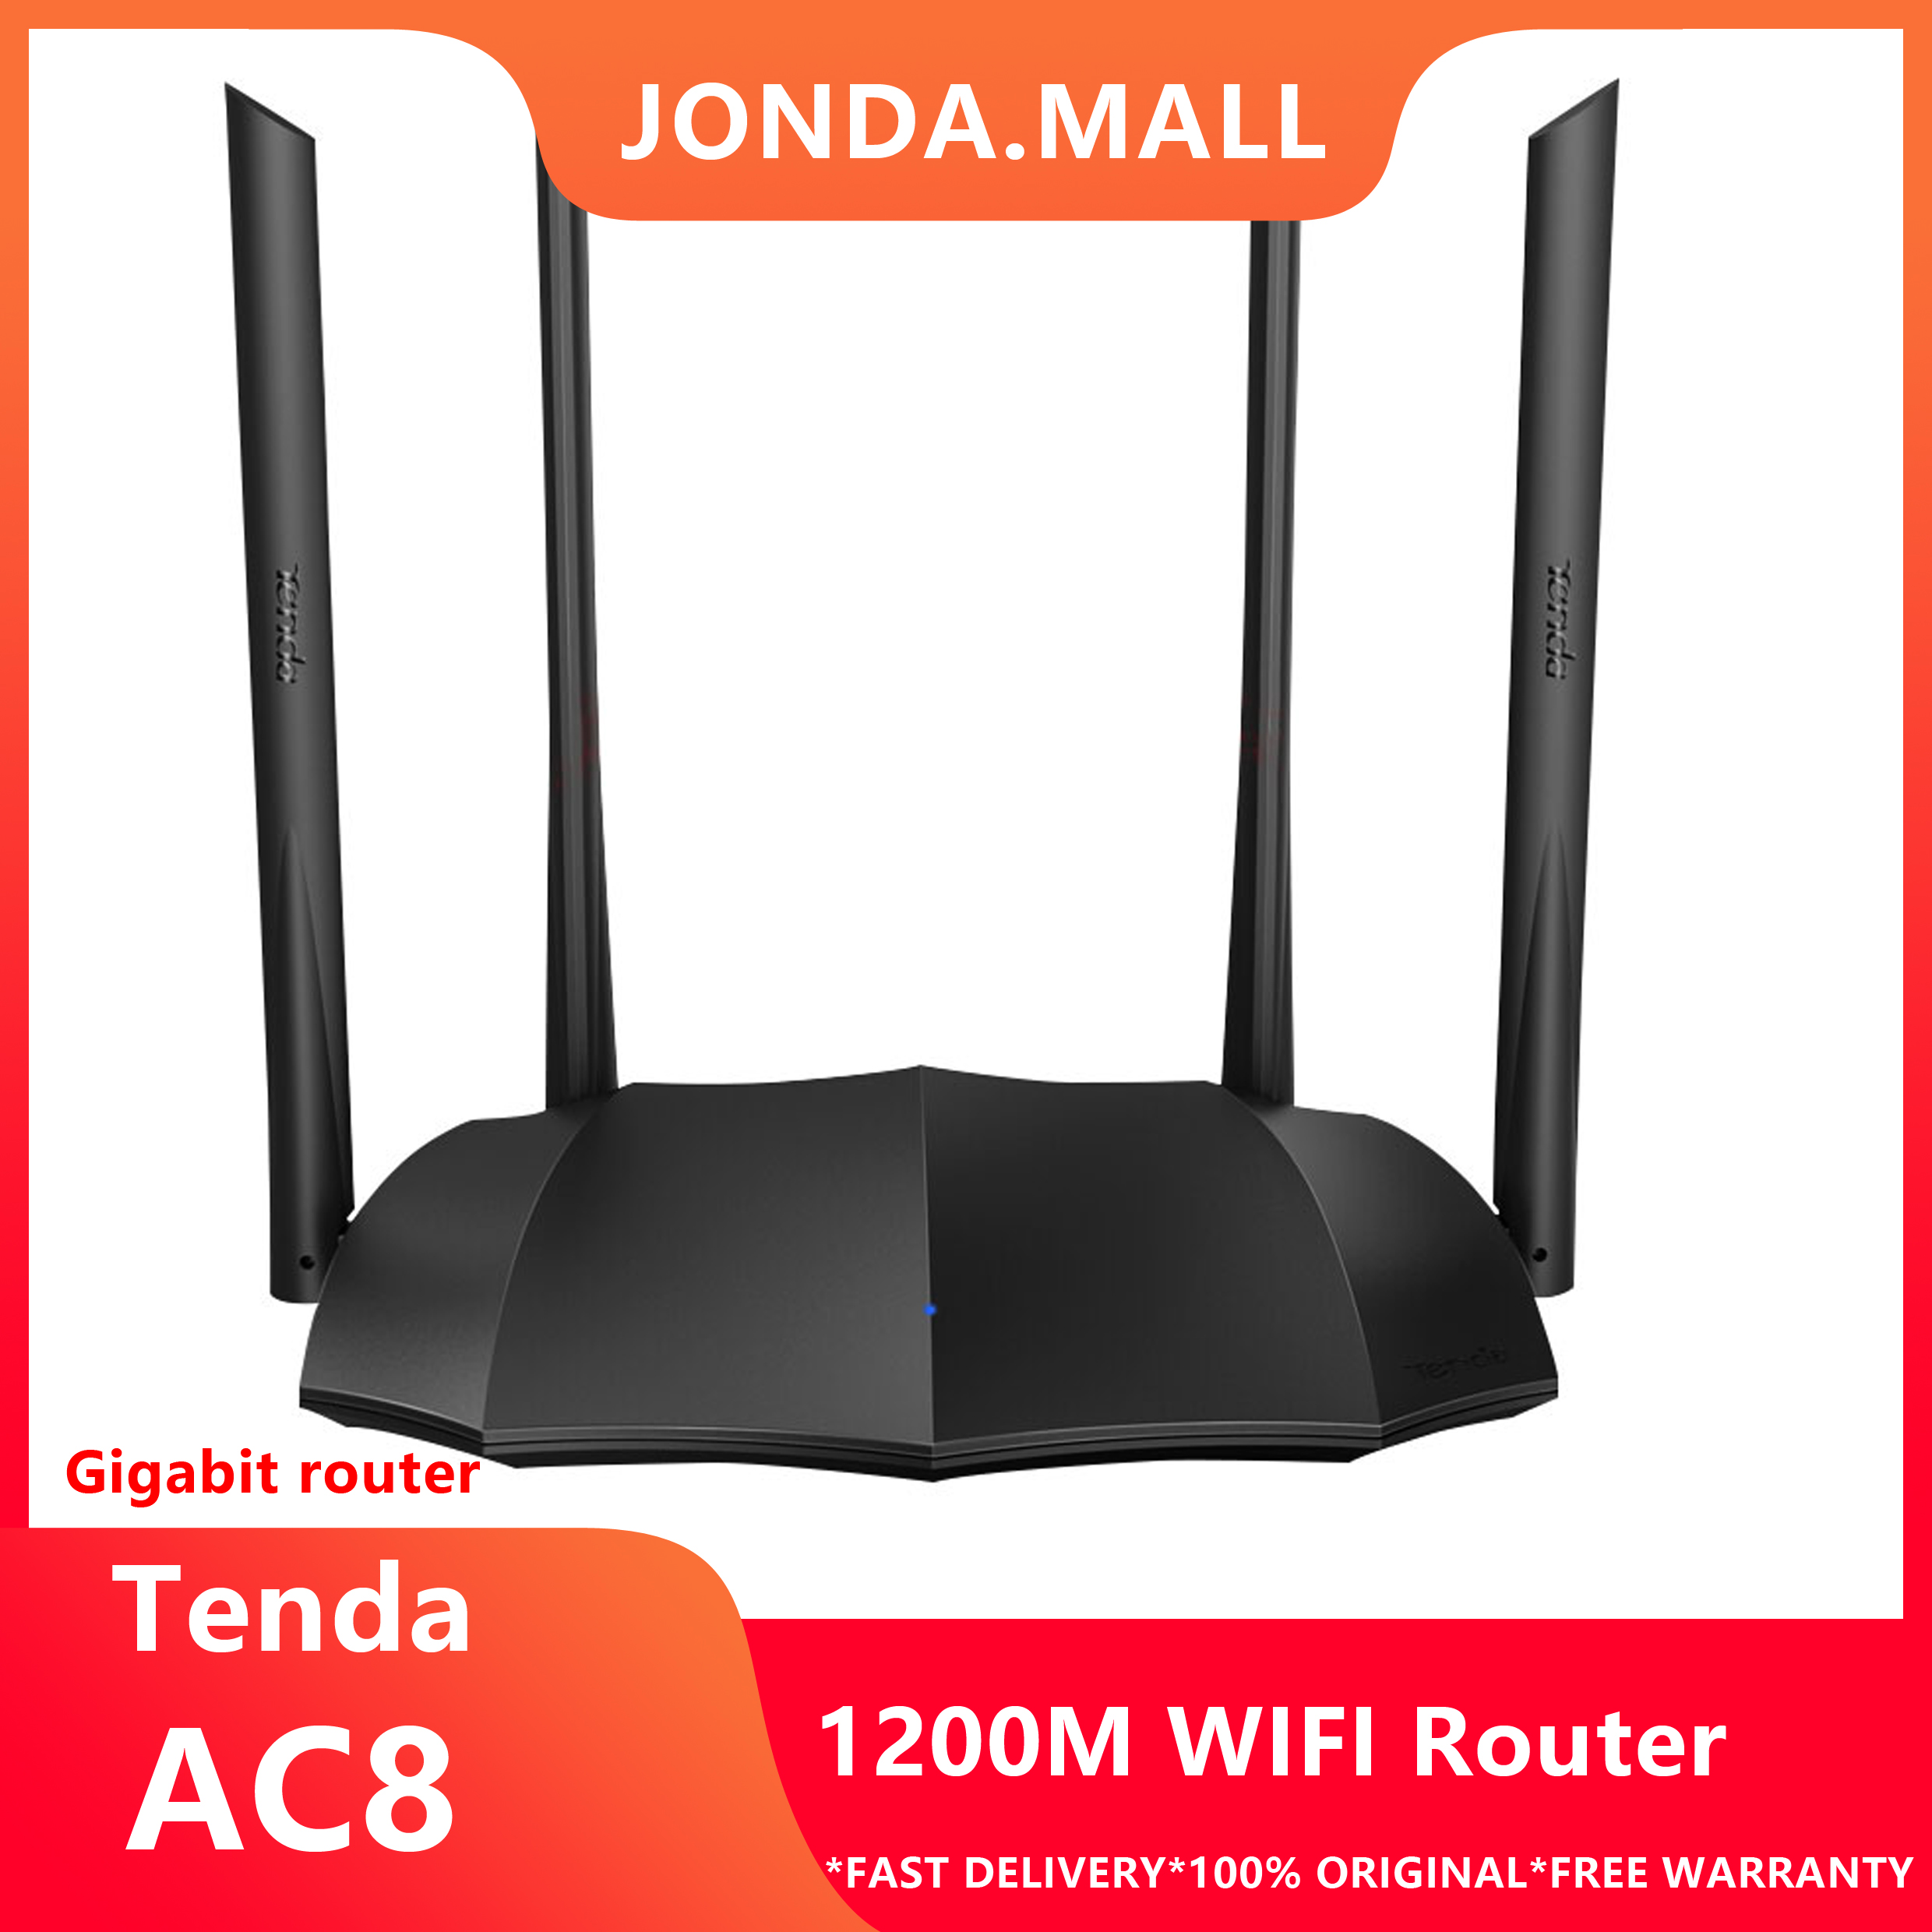 Tenda AC8 AC1200M Wireless WiFi Router Support IPV6 Home Coverage Dual Band Wireless Router,App Control